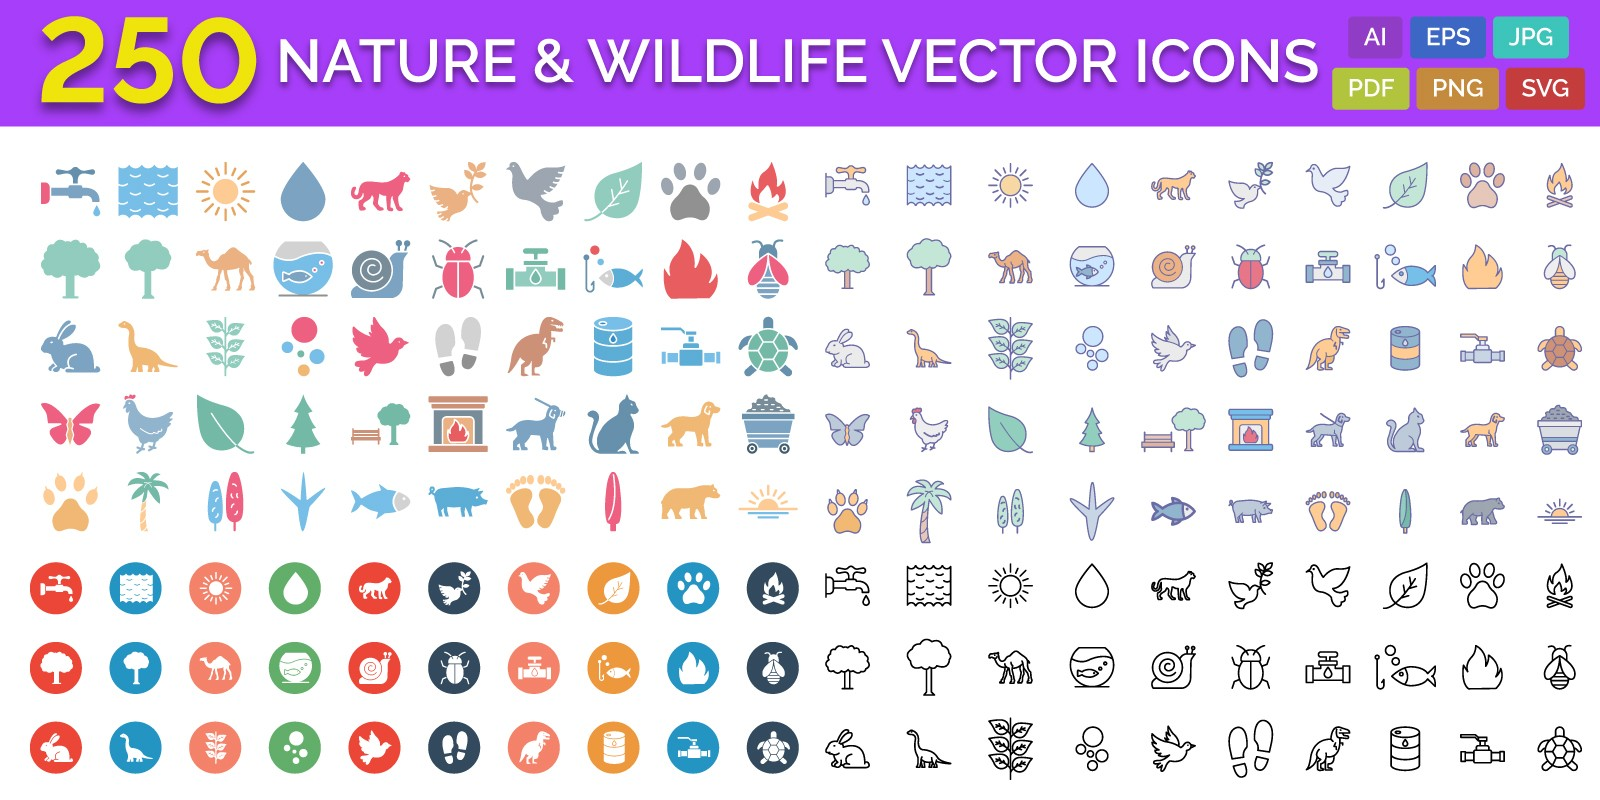 250 Nature & Wildlife Vector Icons